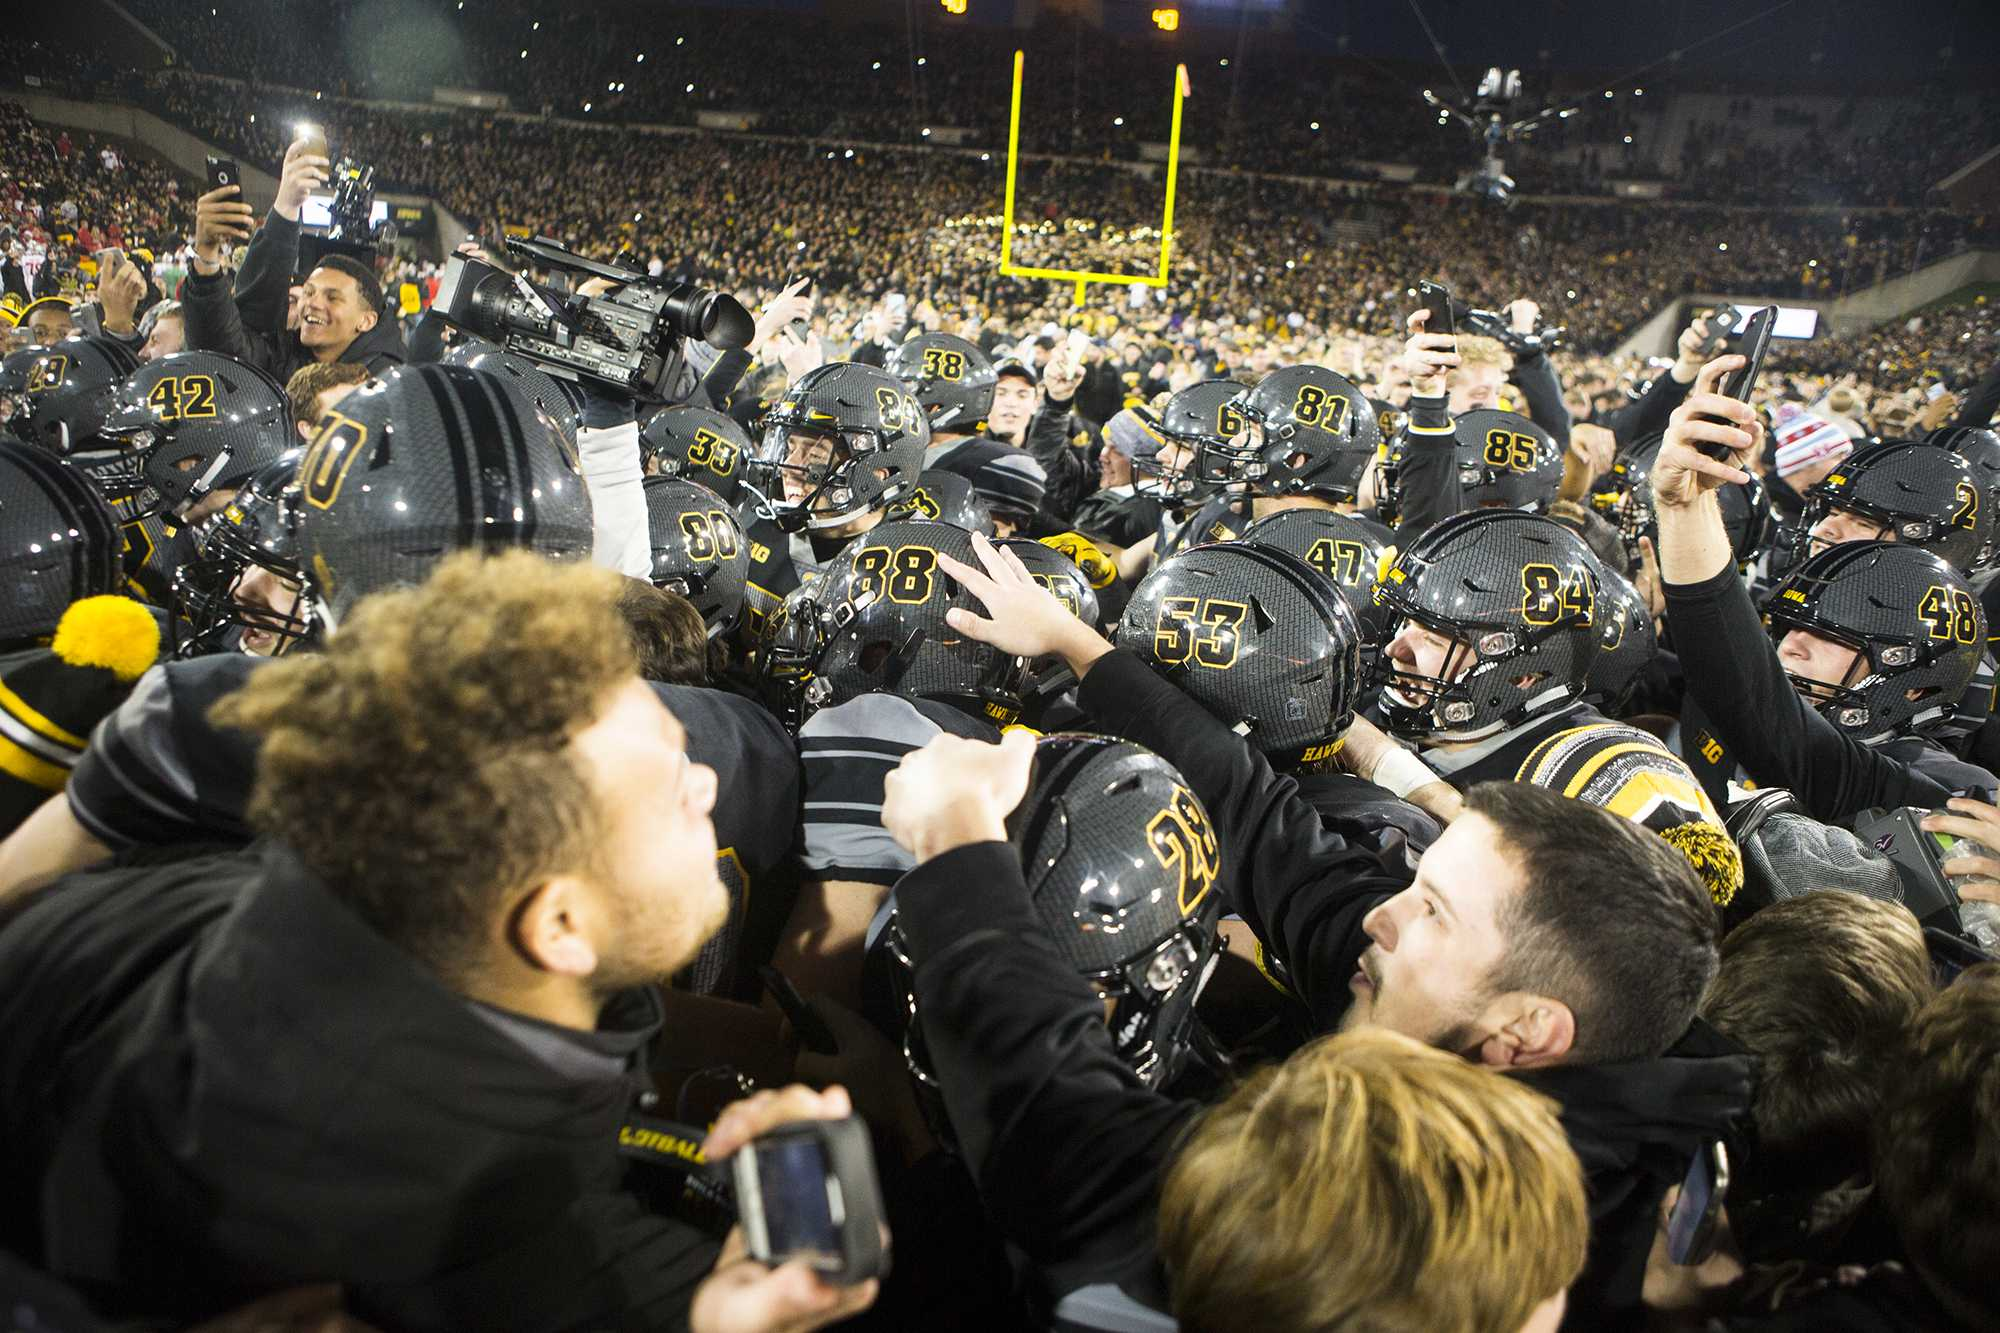 Iowa fans storm the field during the Iowa/Ohio State football game in Kinnick Stadium on Saturday, Nov. 4, 2017. The Hawkeyes defeated the Buckeyes in a storming fashion, 55-24. (Joseph Cress/The Daily Iowan)